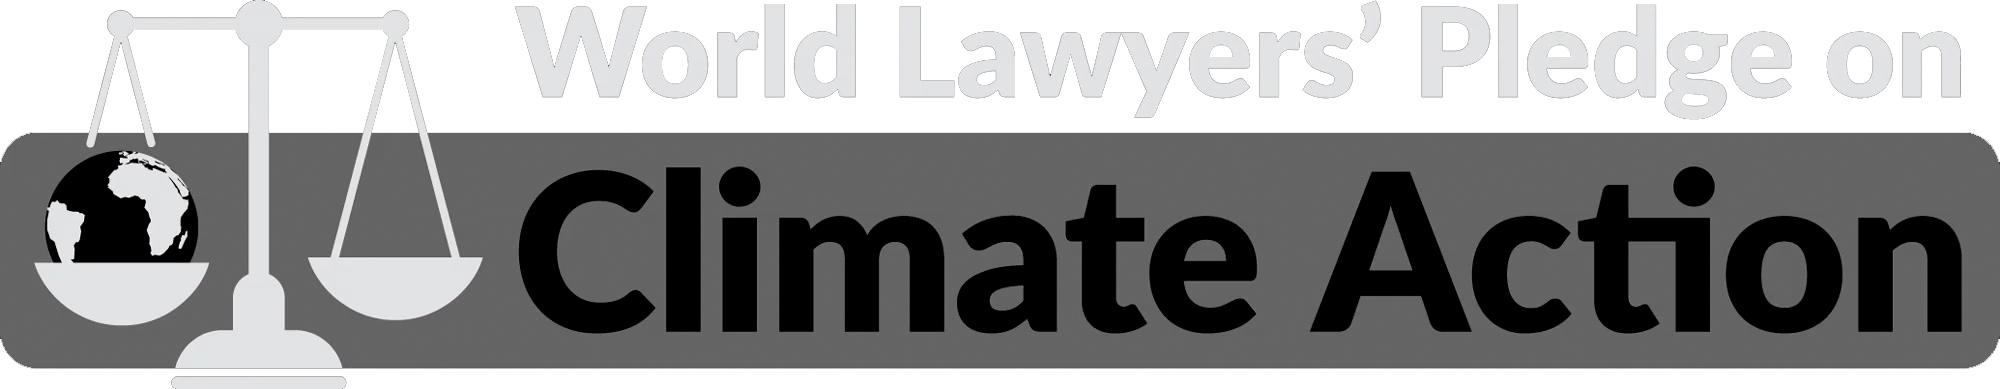 World Lawyers' Pledge on Climate Action